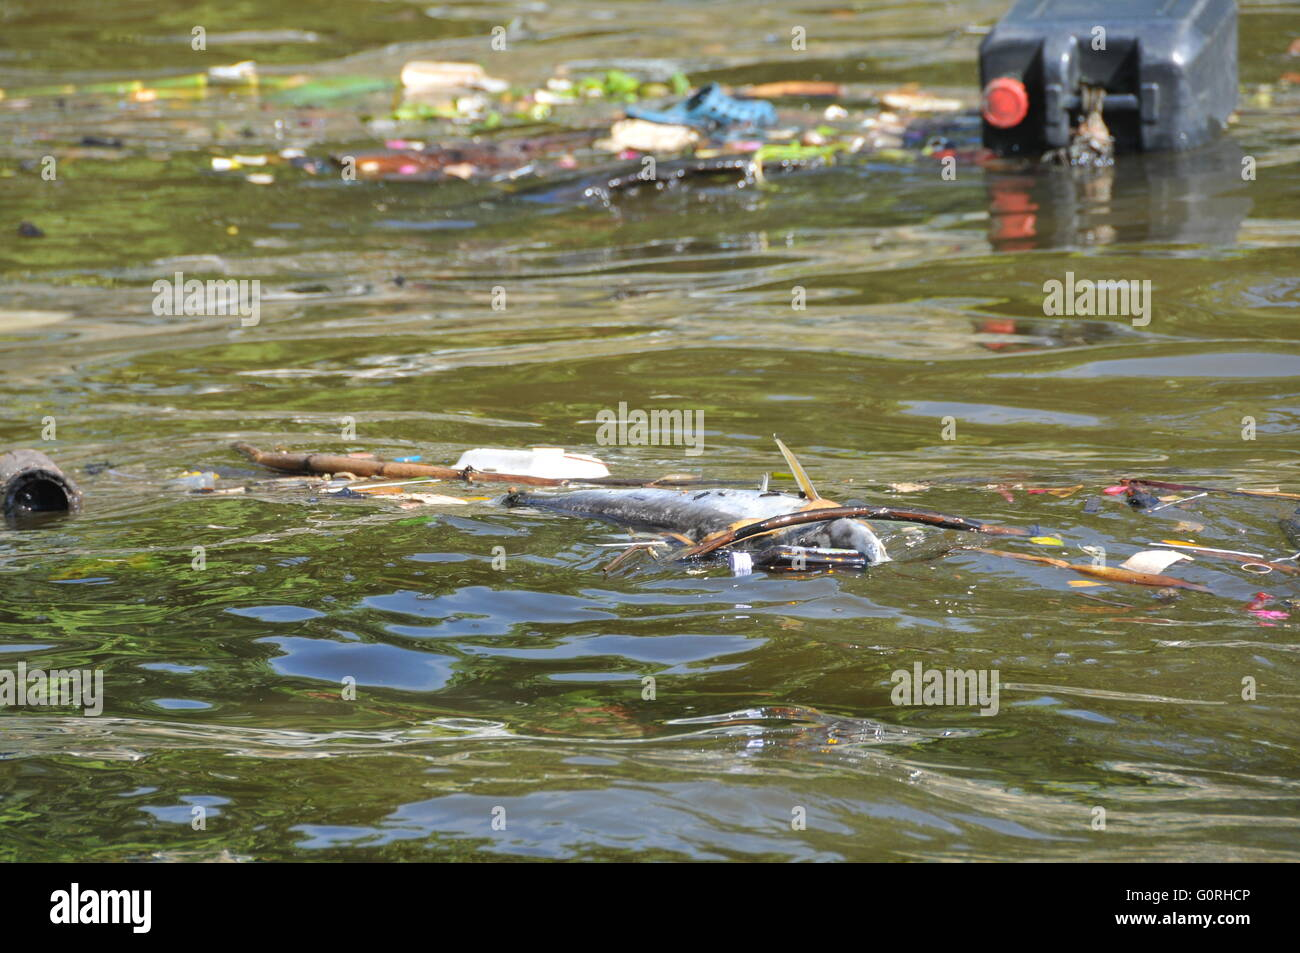 River Pollution in Thailand - Stock Image